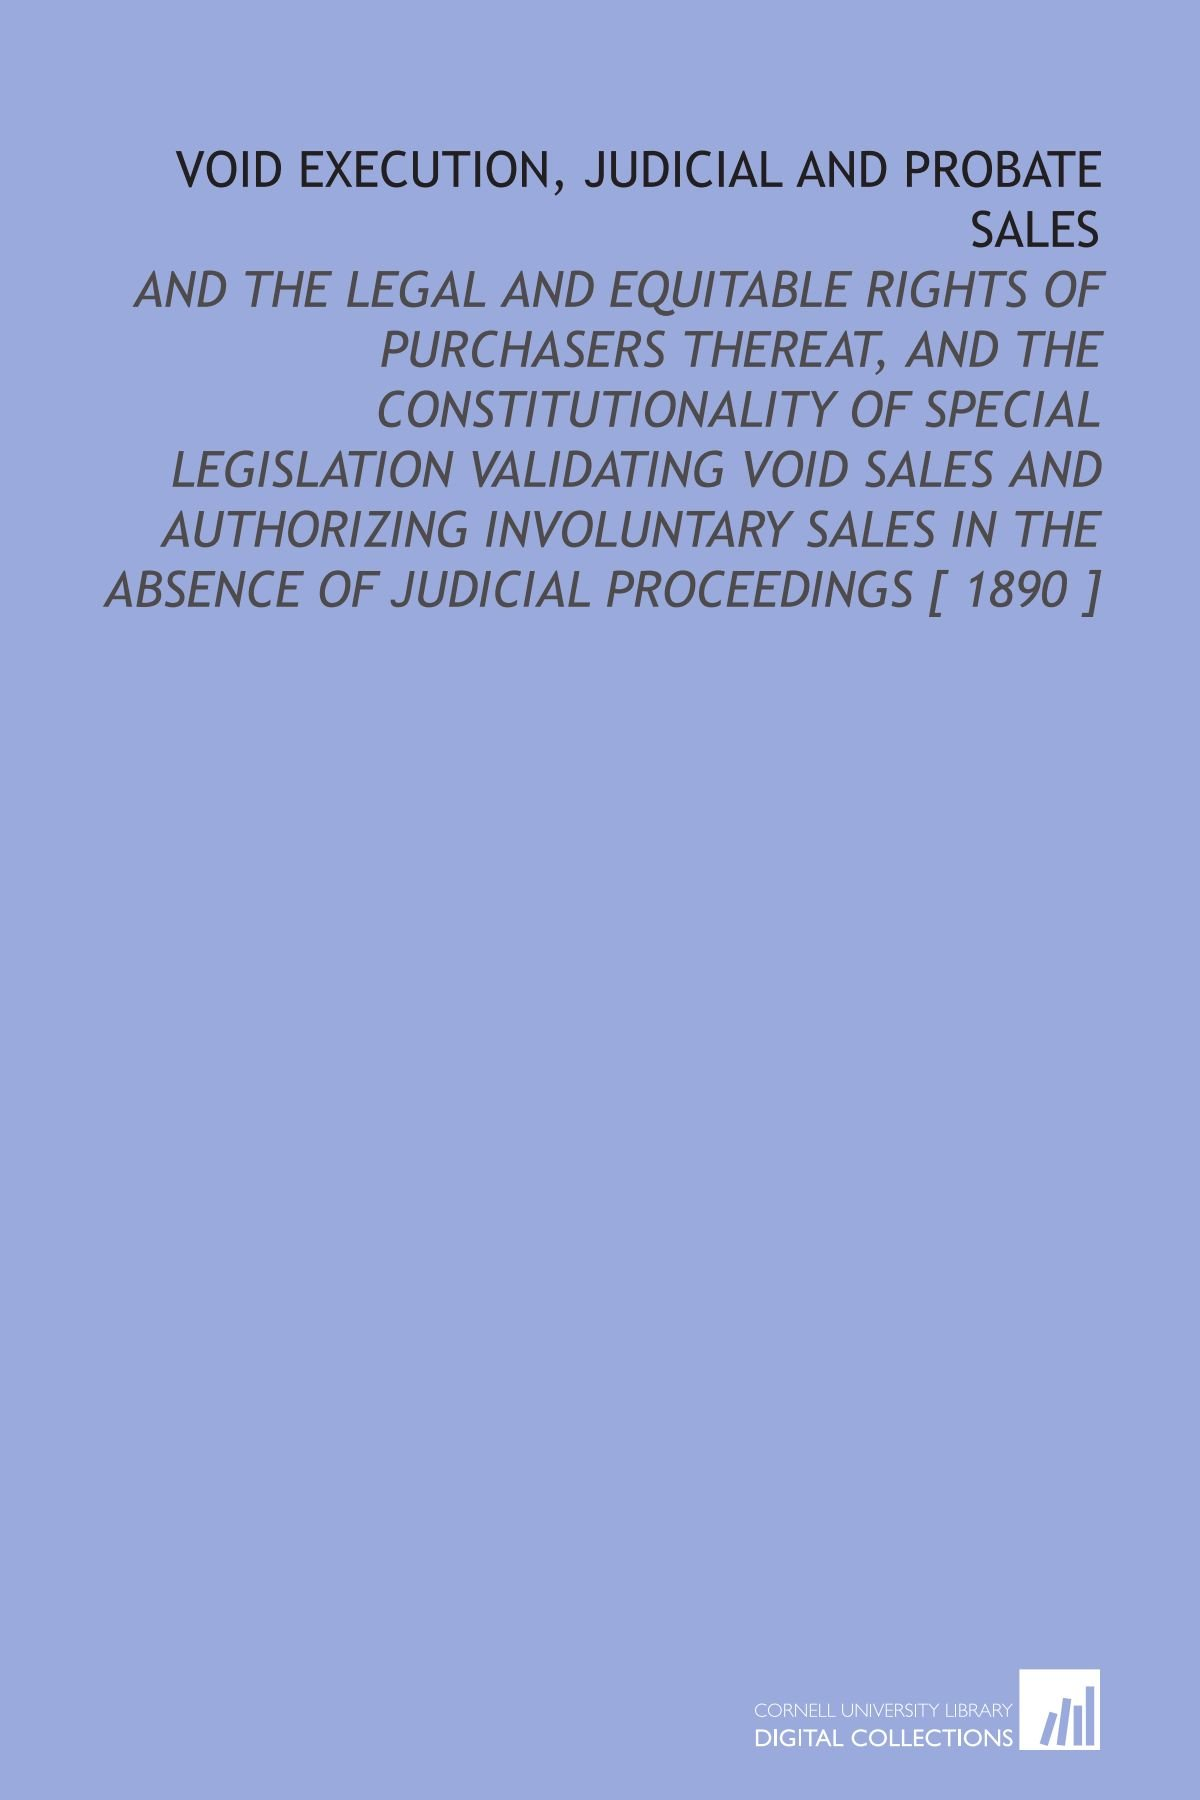 Void Execution, Judicial and Probate Sales: And the Legal and Equitable Rights of Purchasers Thereat, and the Constitutionality of Special Legislation ... the Absence of Judicial Proceedings [ 1890 ] ebook